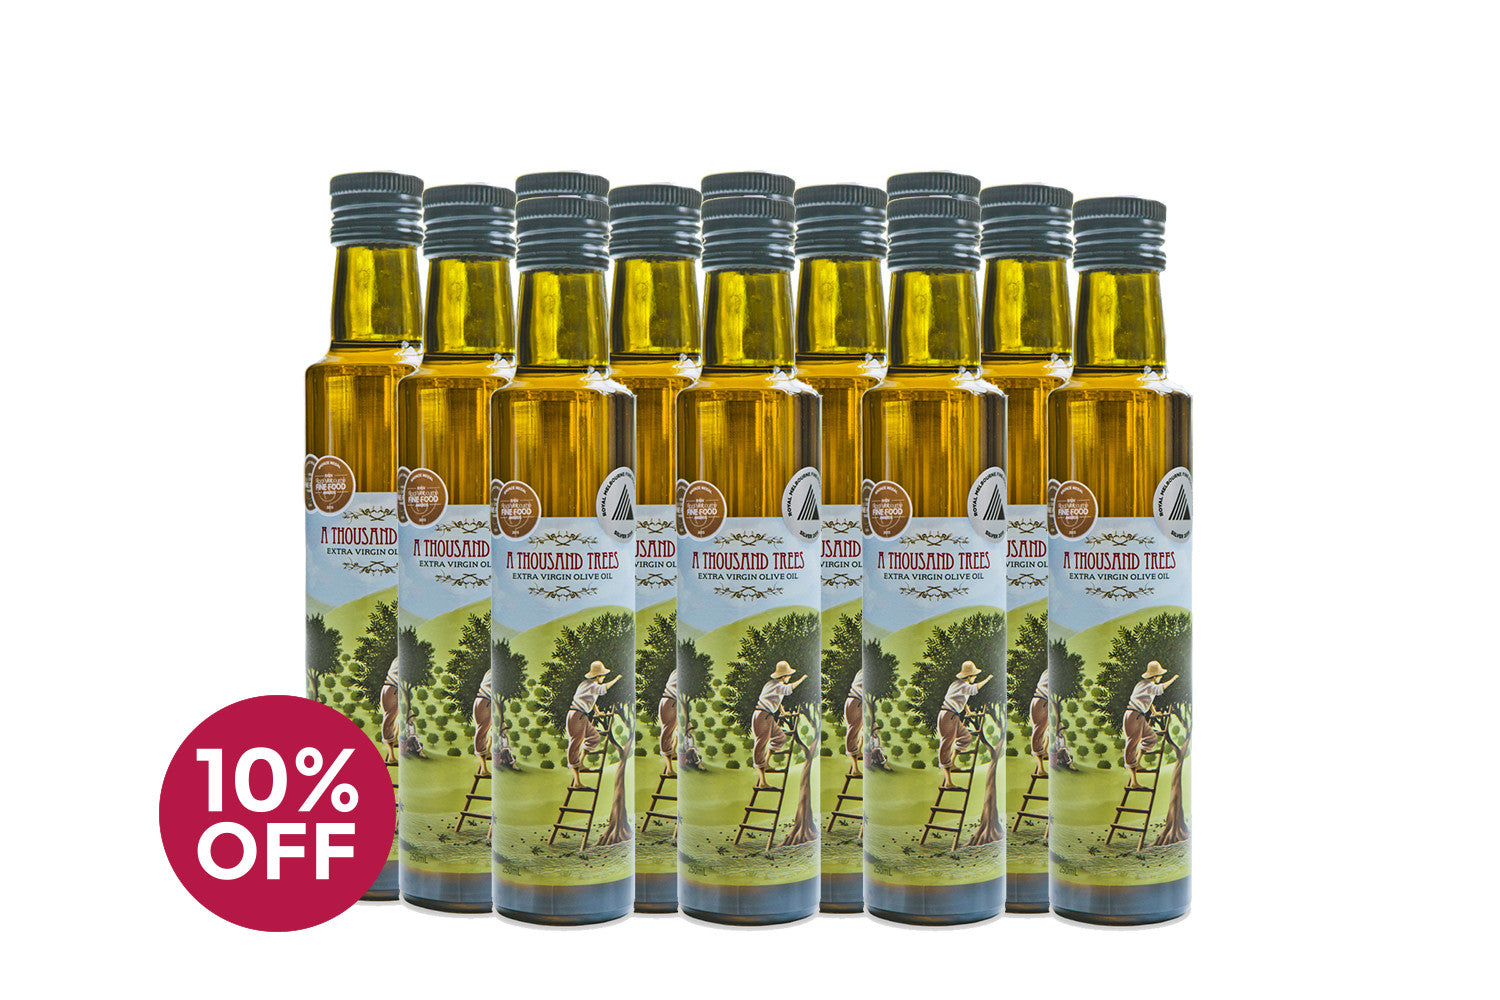 250ML Extra Virgin Olive Oil Twelve Pack